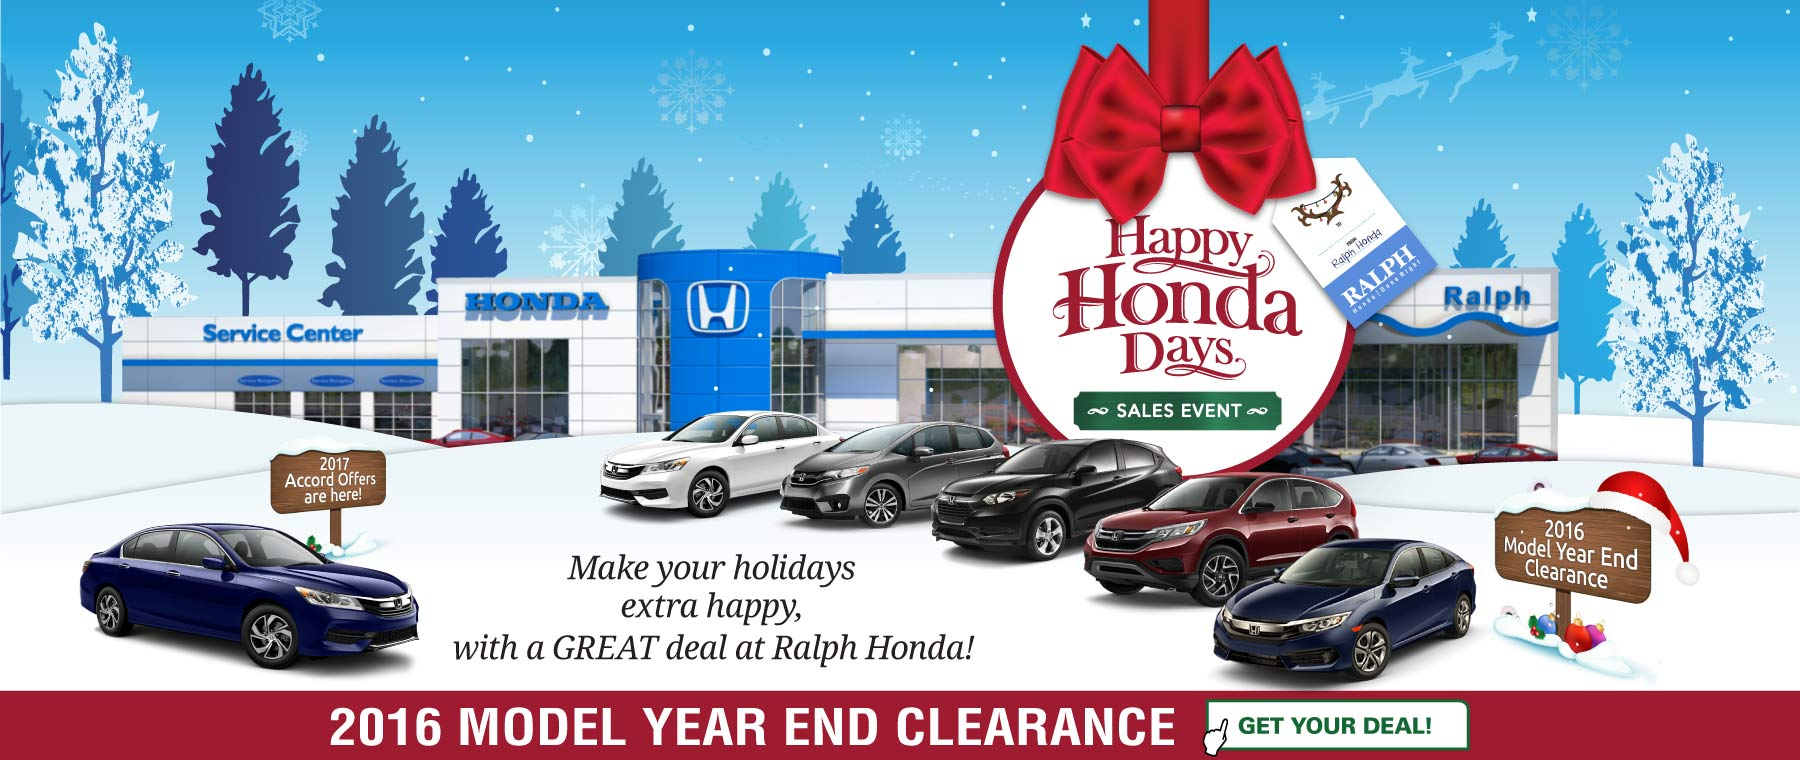 Get your deal on a new Honda now at Ralph Honda during Happy Honda Days!